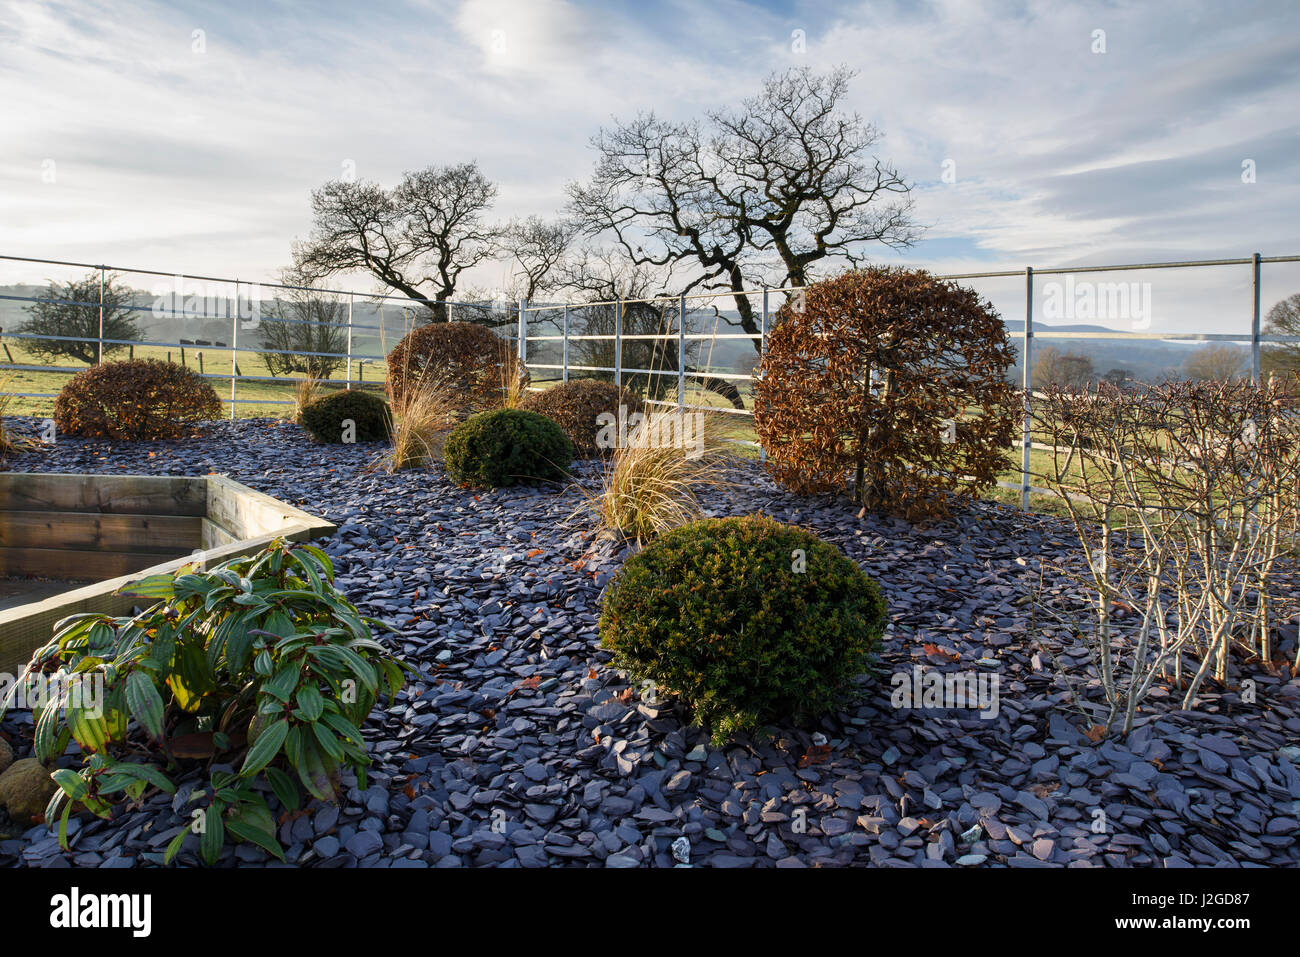 Decorative Chippings Stockfotos & Decorative Chippings Bilder - Alamy